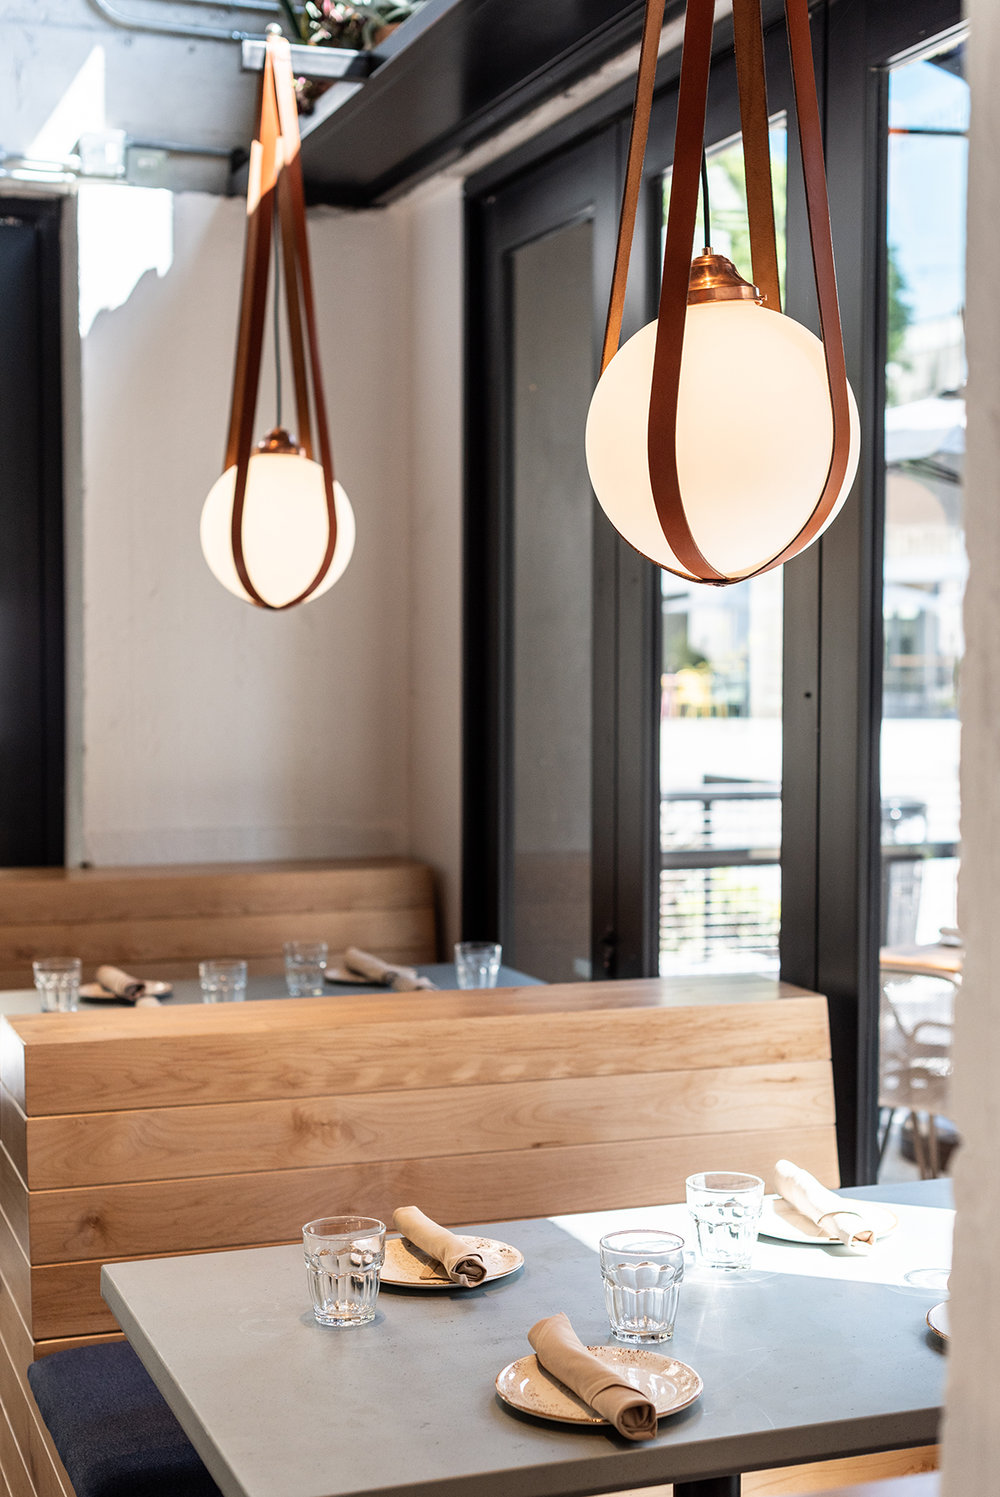 Custom Paul Paige pendants @ Rappahannock Oyster Bar  / restaurant design by Studio Unltd